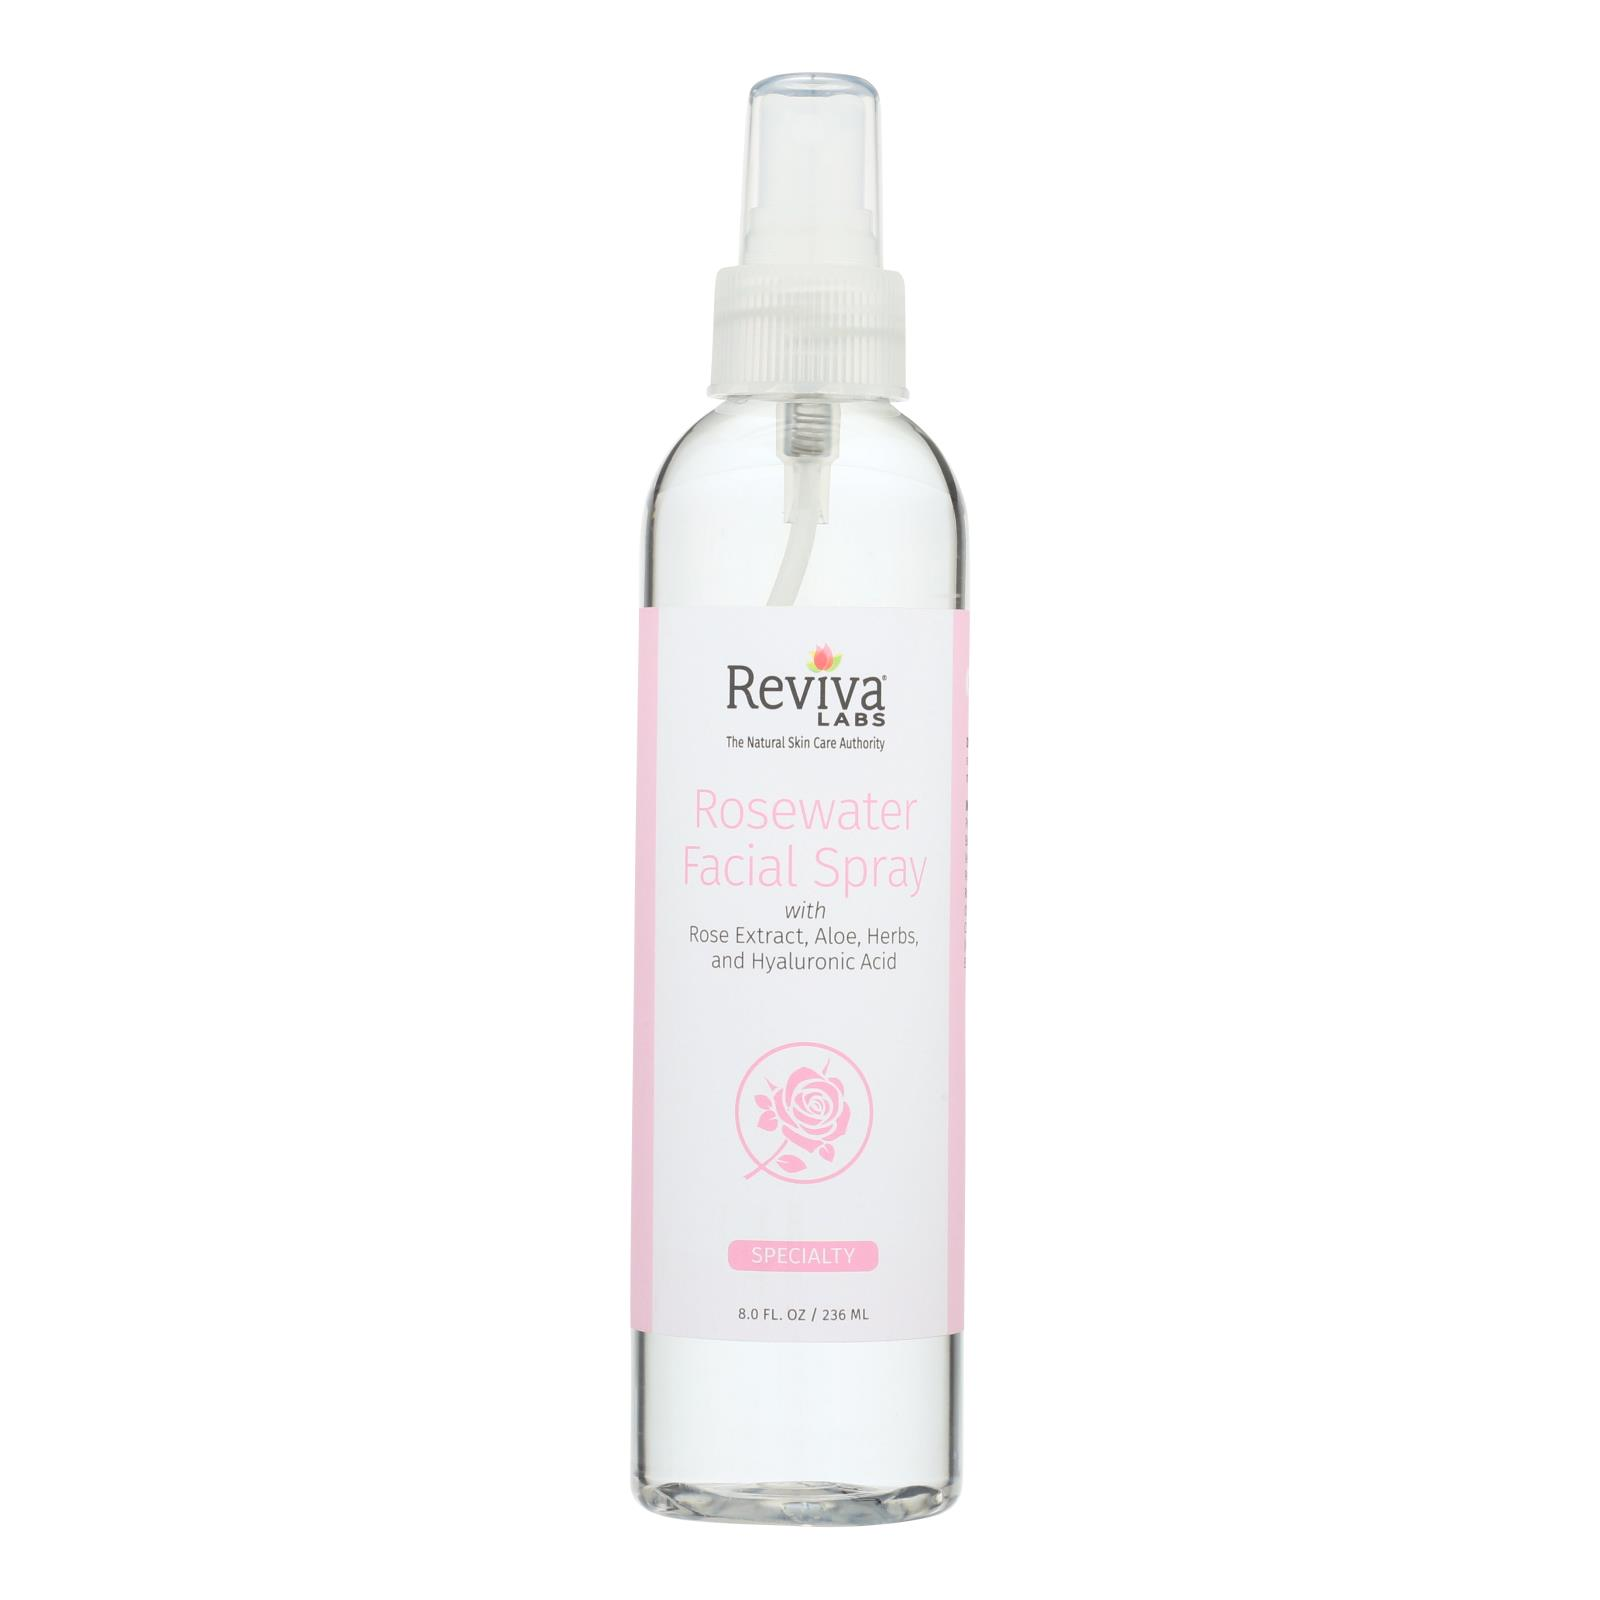 Reviva Labs - Facial Spray Rosewater - 8 fl oz